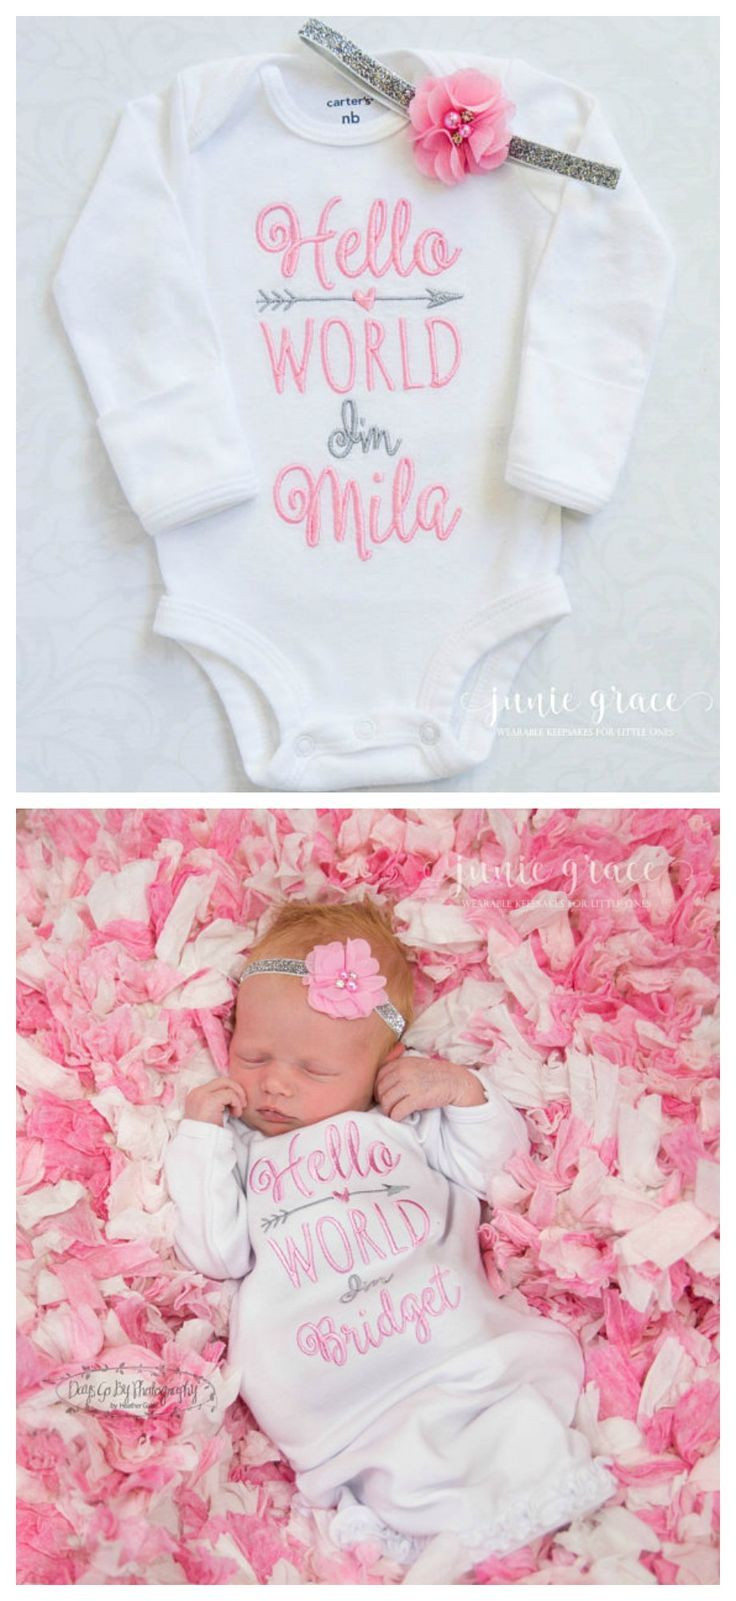 2f0bf440f4fd6 Junie Grace - Hello World! Personalized coming home outfit for ...